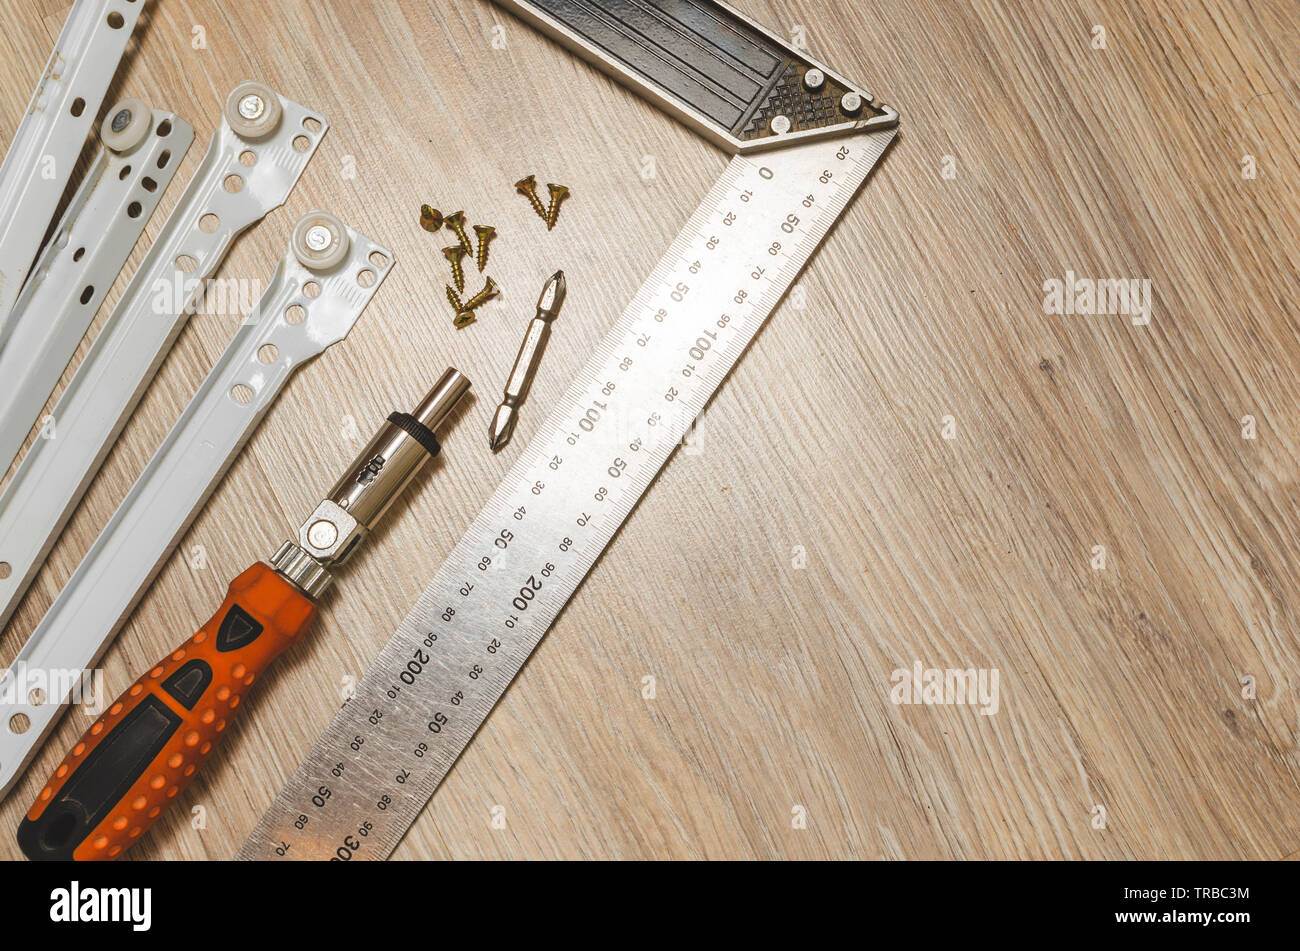 Screwdriver, metal and measuring the area and furniture guides. Furniture accessories. - Stock Image